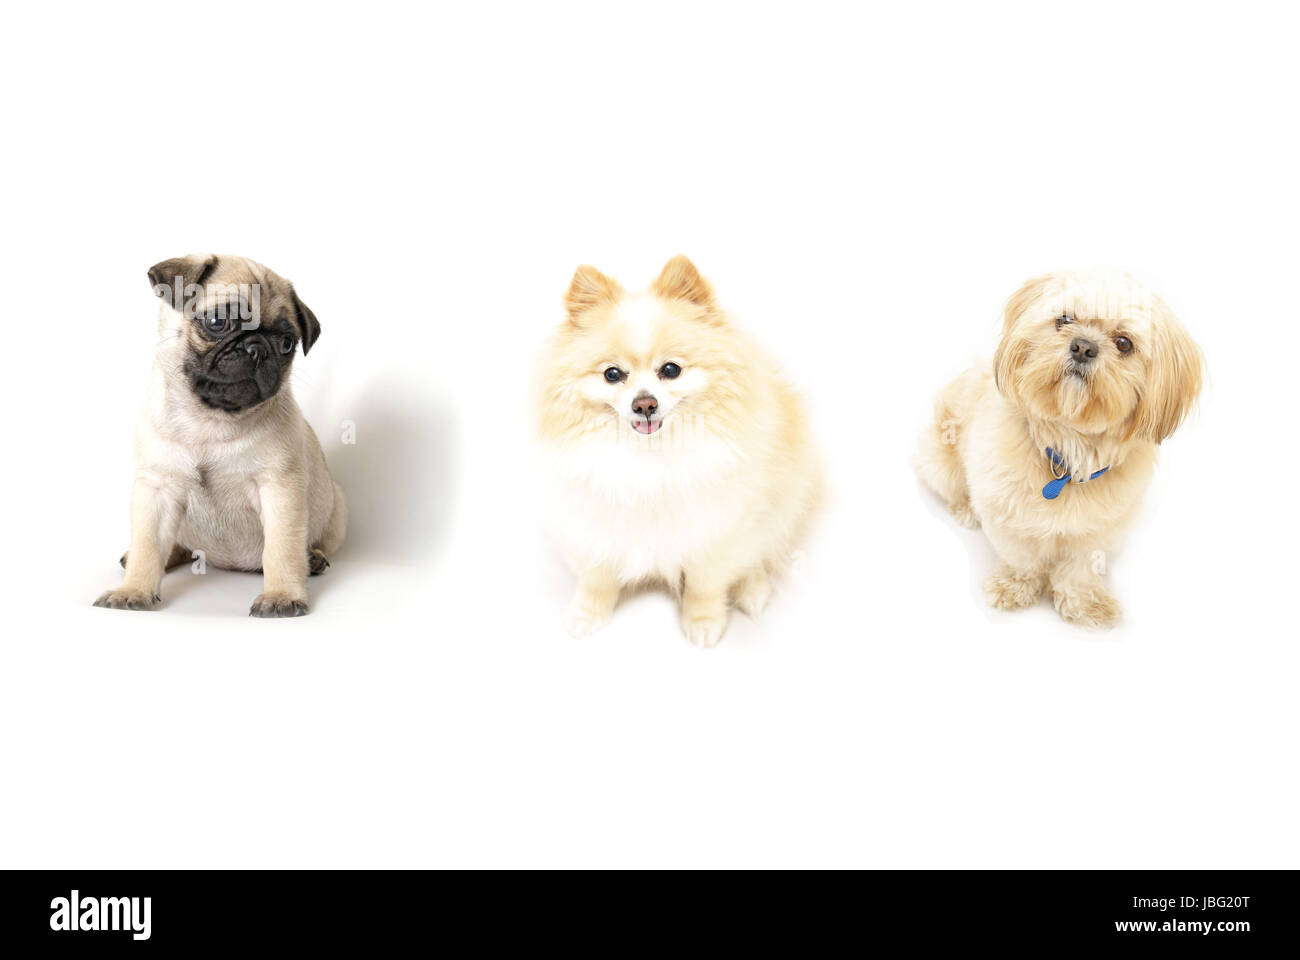 A few obedient dogs in a row isolated on a white background. - Stock Image